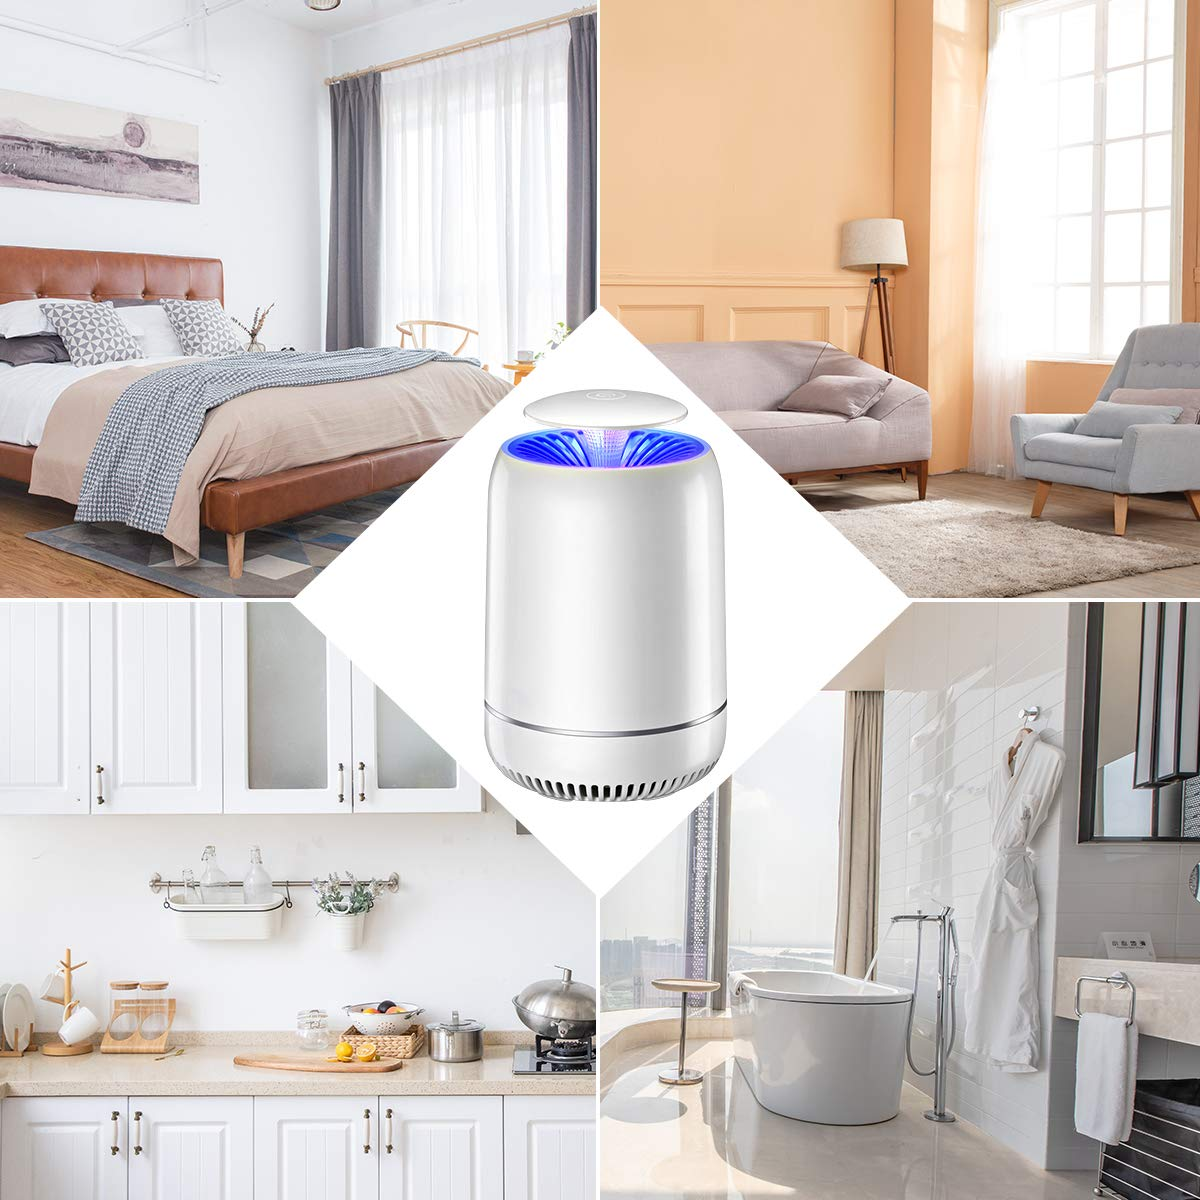 Electric Mosquito Insect Killer//Mosquito Trap//Fly Zapper and Bug Zapper//UV Insect Killer Lamp with Strong Built in Suction Fan,USB Power Supply,Chemical-free and Quiet for Home FOCHEA Insect Killer